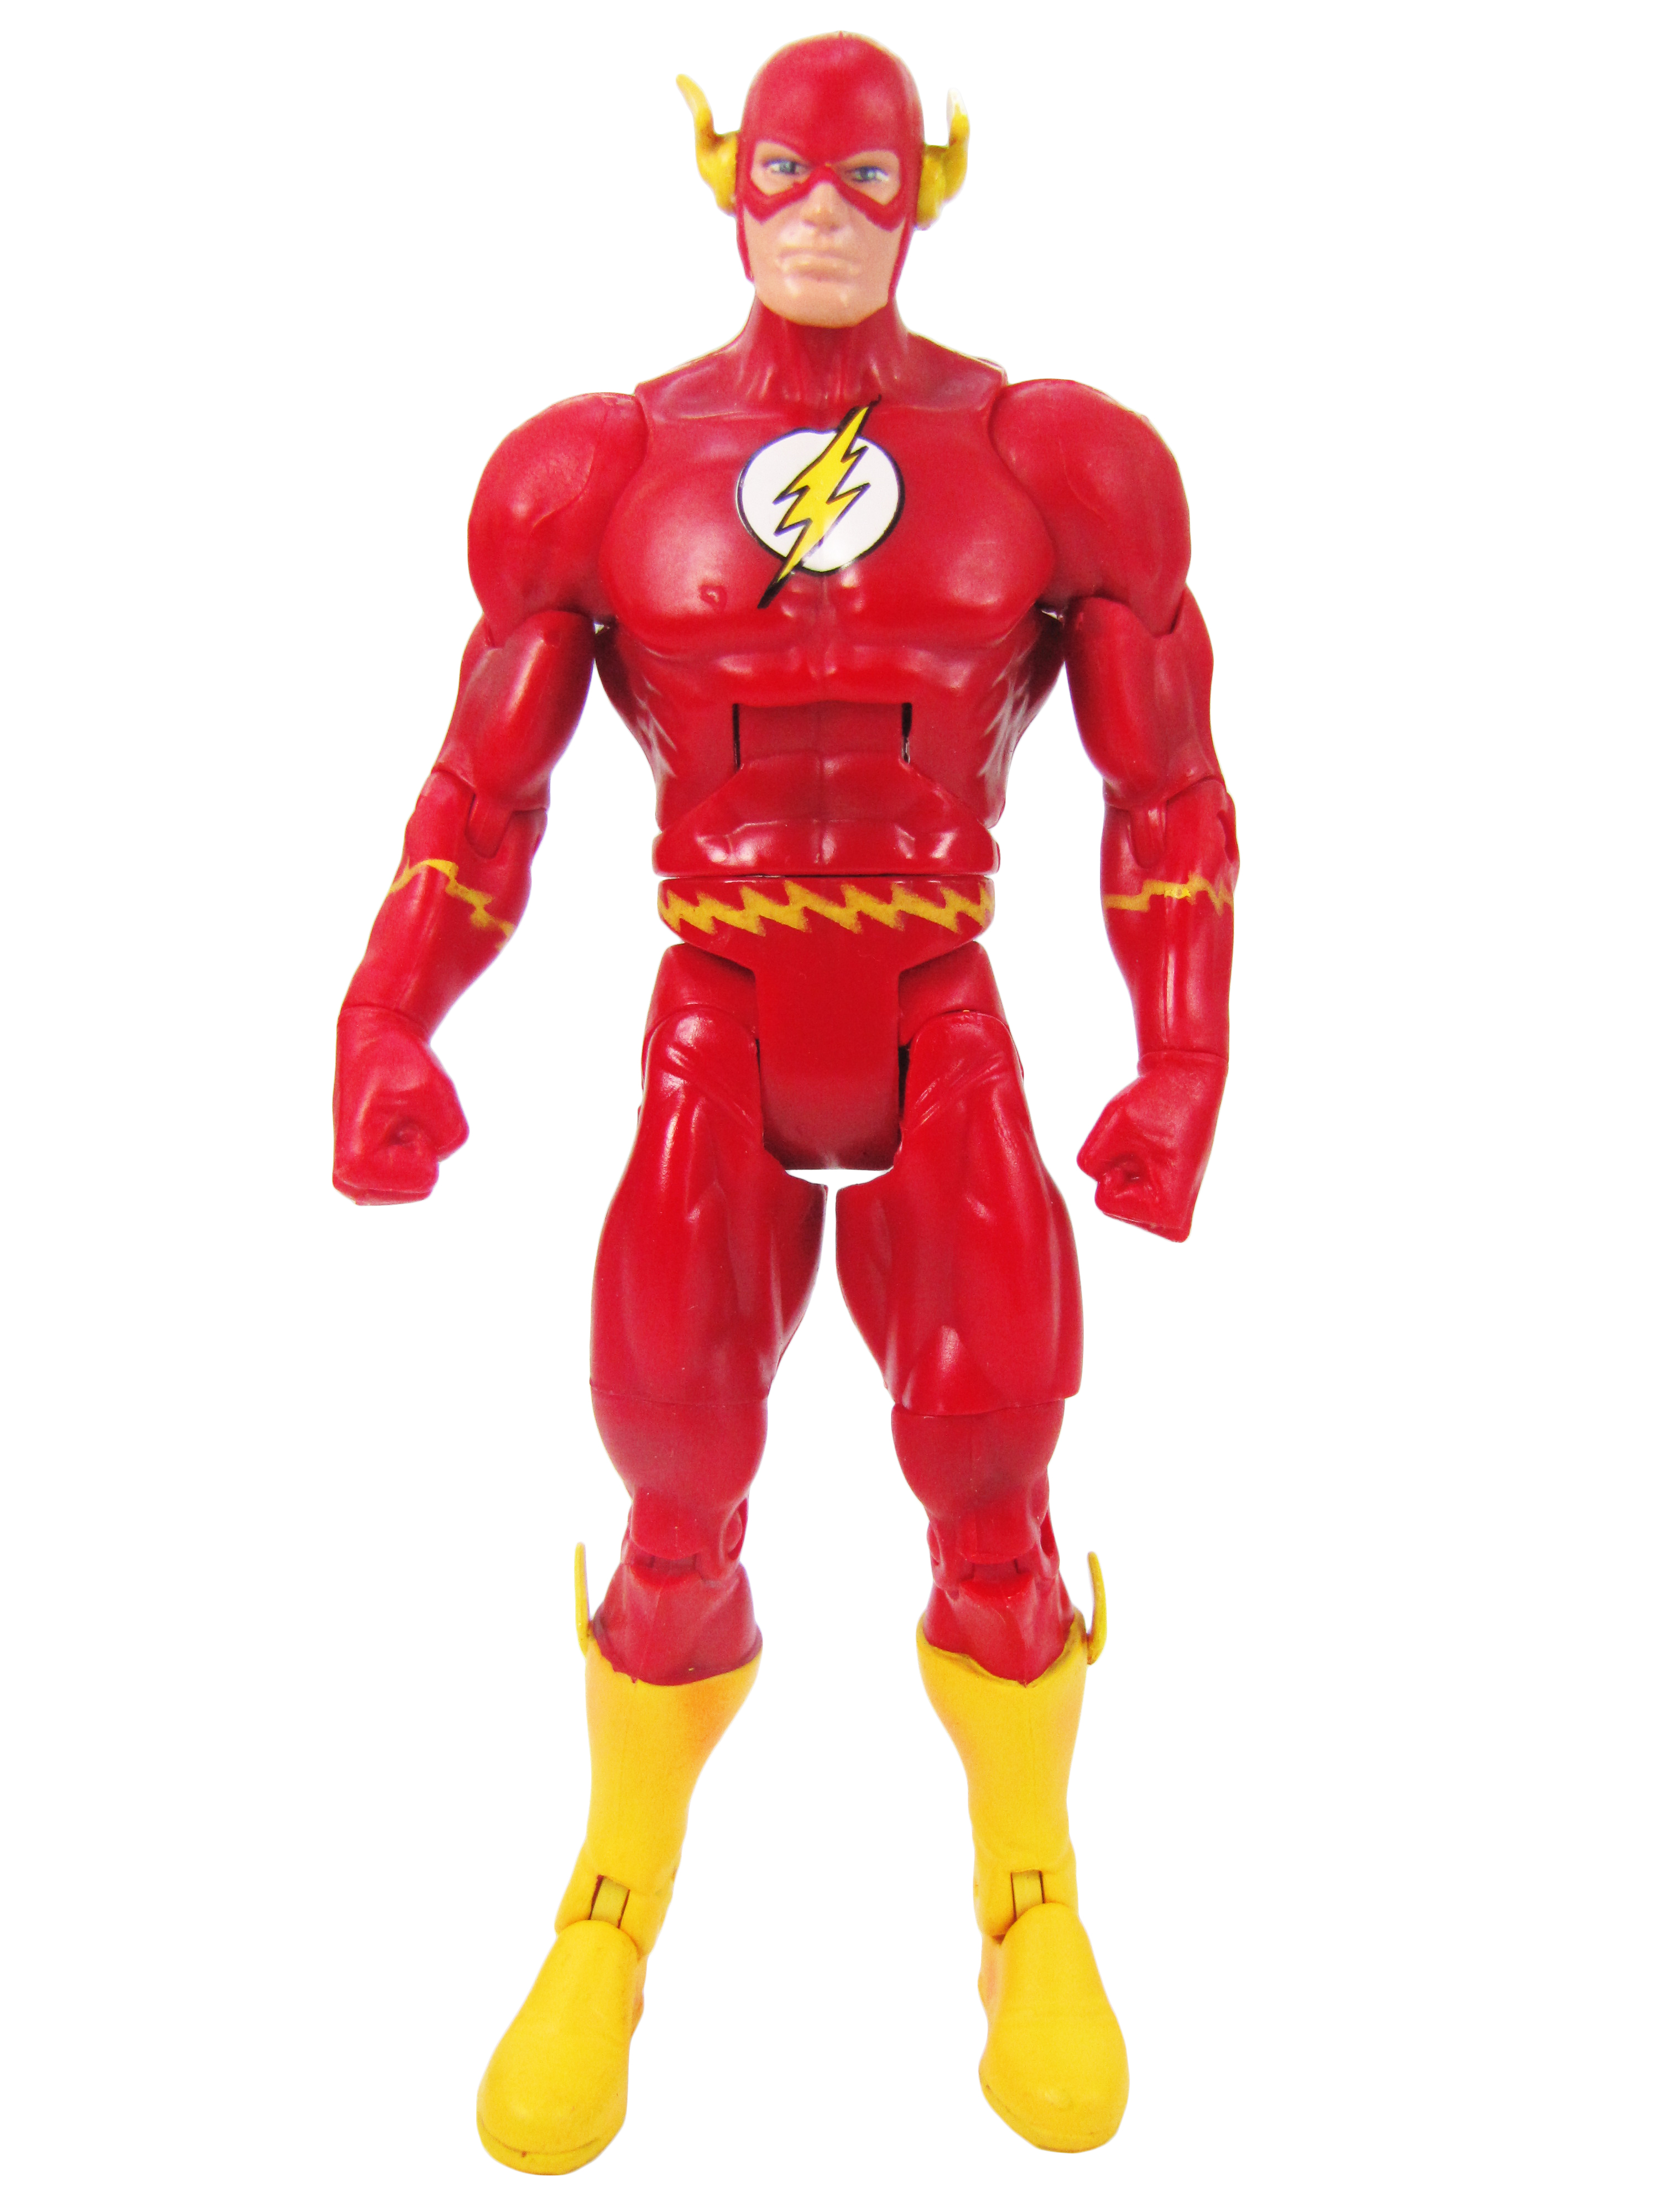 2009 DC Universe Classics THE FLASH BARRY ALLEN Wave 7 ATOM SMASHER Complete